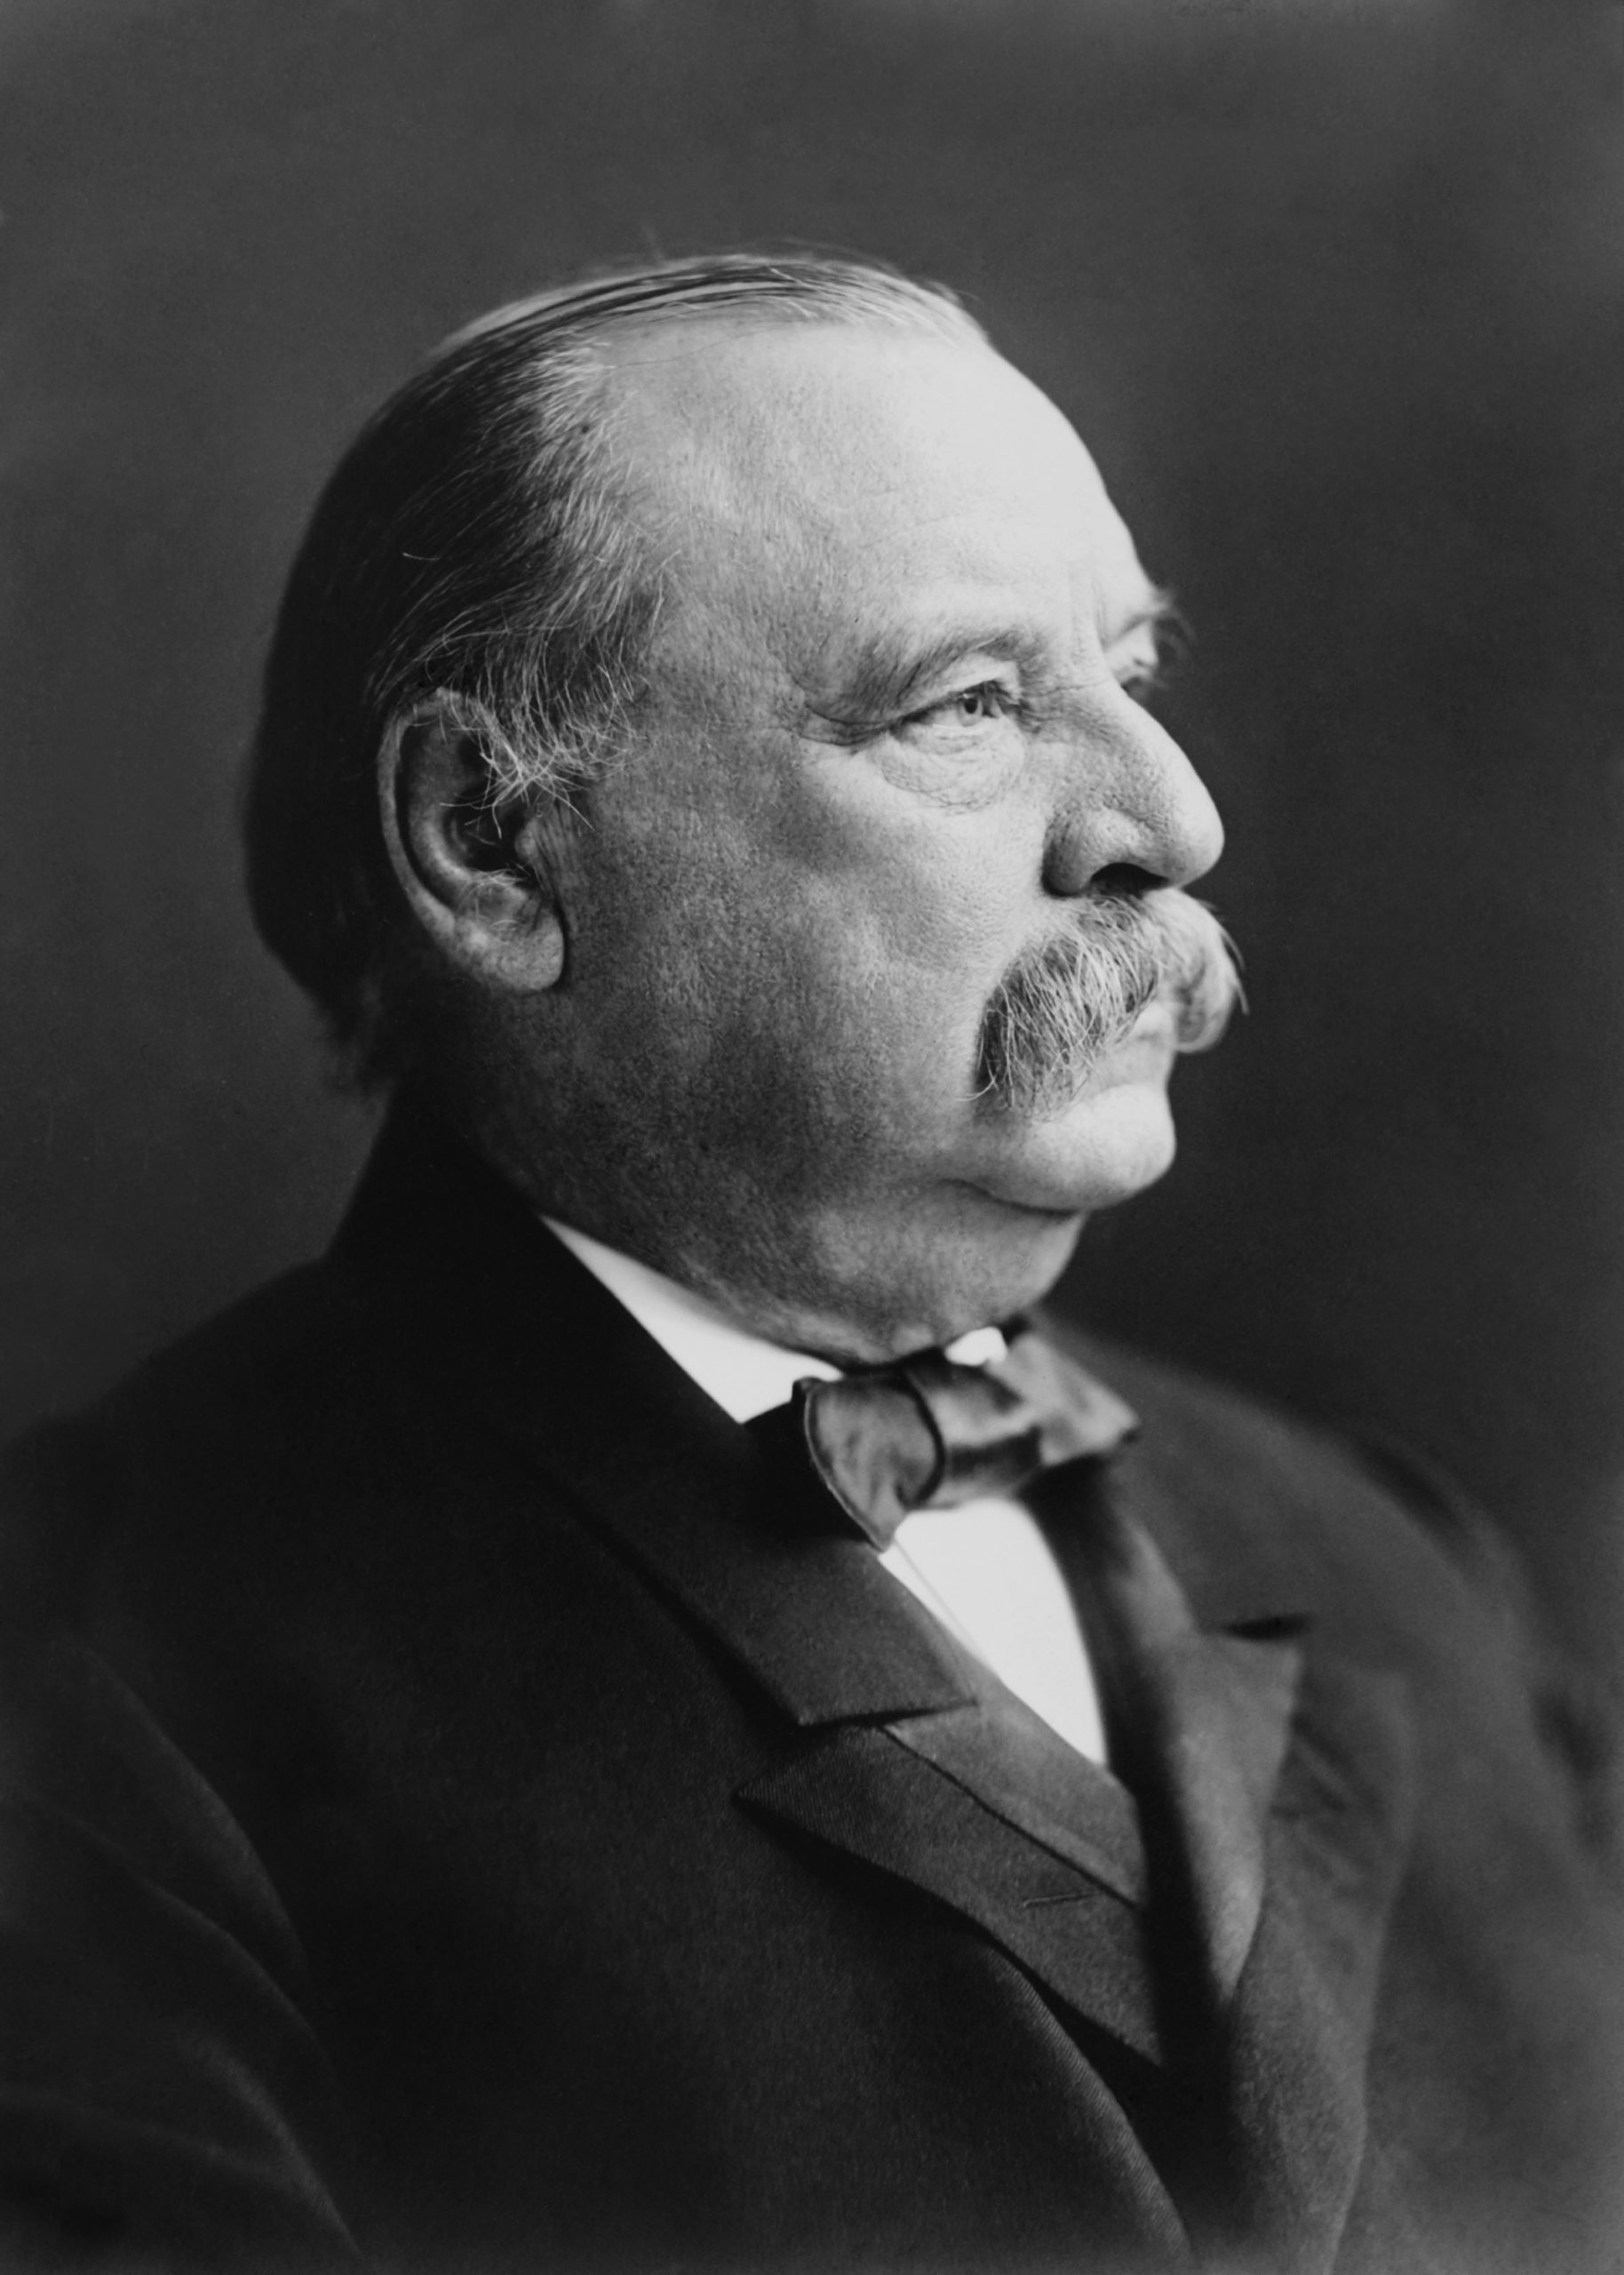 He was an American politician and lawyer who was the 22nd and 24th president of the United States, the only president in American history to serve two non-consecutive terms in office.